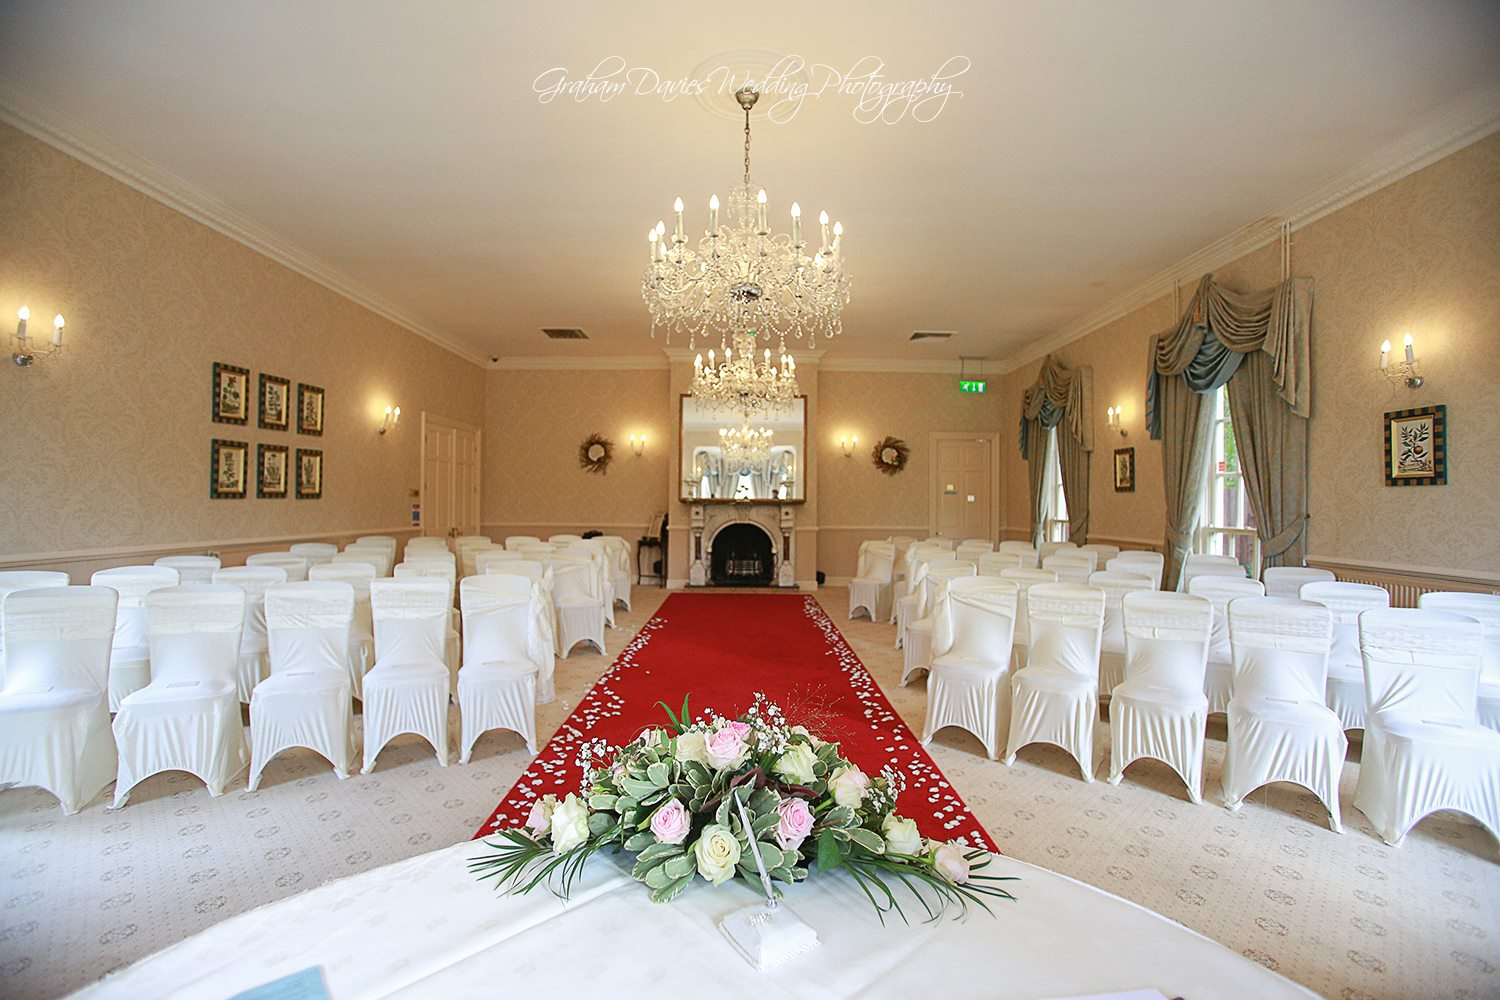 Check out our Wedding Packages - on offer for October and November 2014!